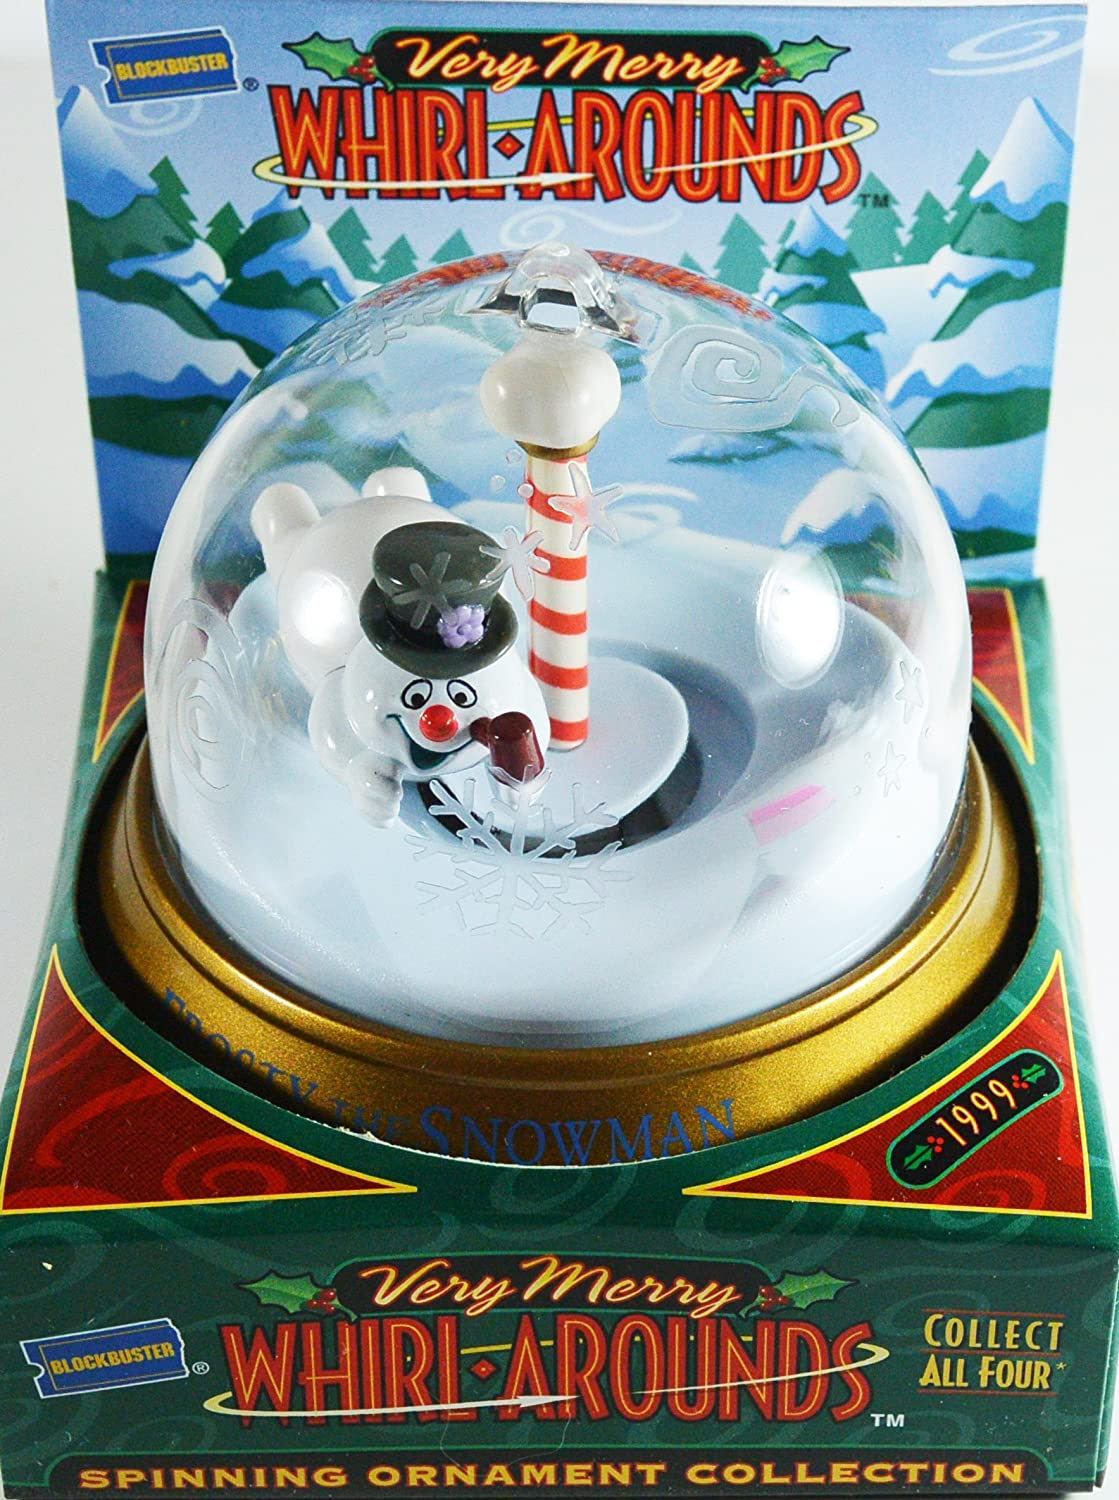 Blockbuster Very Merry Whirl-arounds Frosty the Snowman